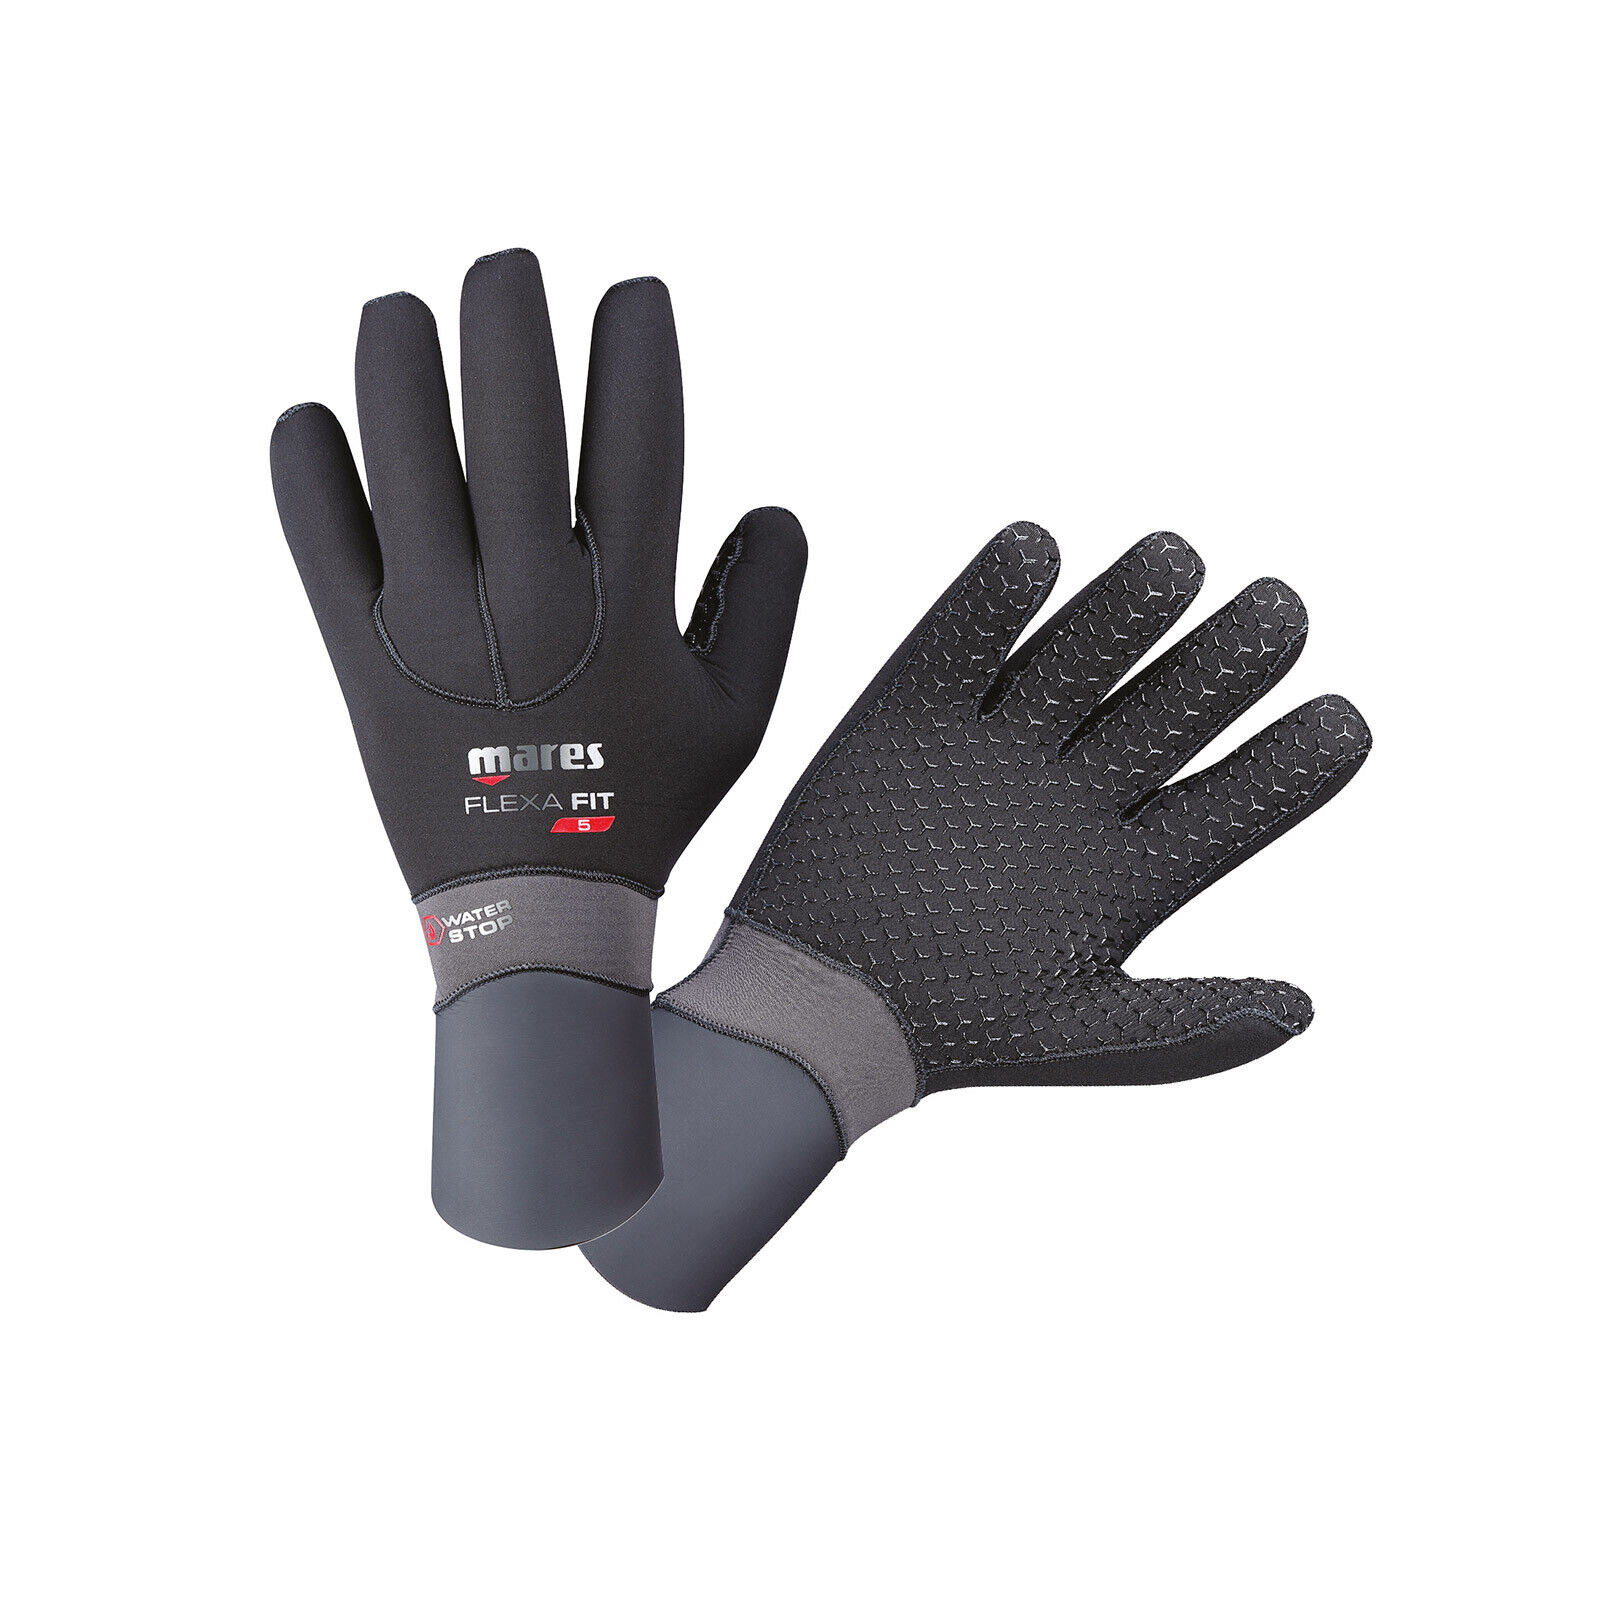 Mares Flexa Fit Scuba Diving Freediving 5mm  Ultrastretch Neoprene G s 412724  hot limited edition